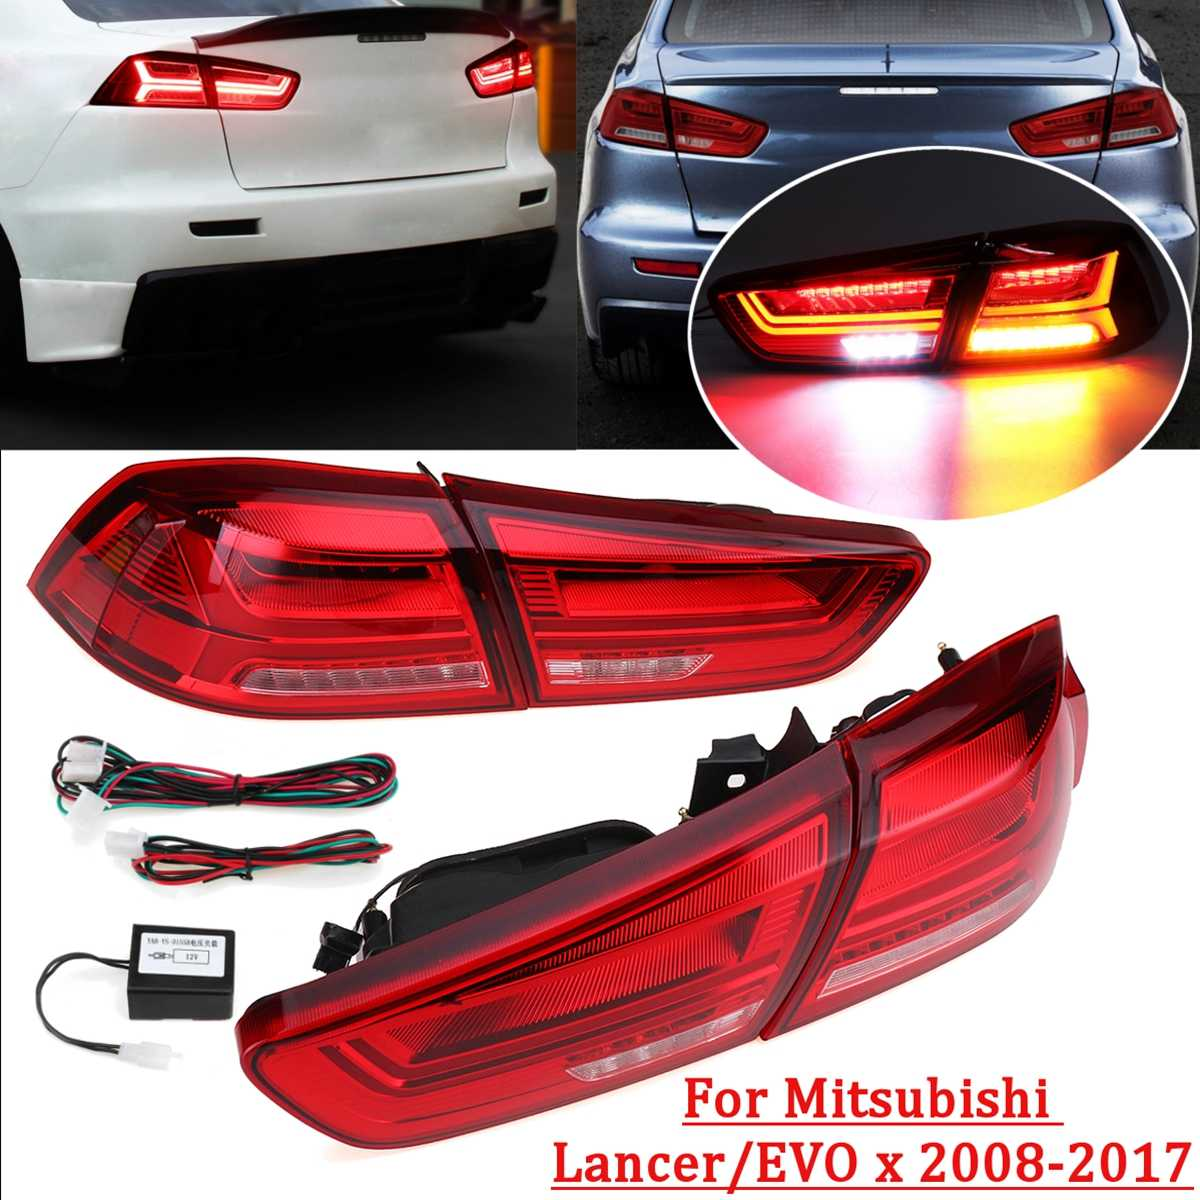 for Mitsubishi Lancer/EVOx 2008 2017 1 Pair Rear LED Tail Brake Light Red Shell Lamps Signal LED DRL Stop Rear Lamp Accessories